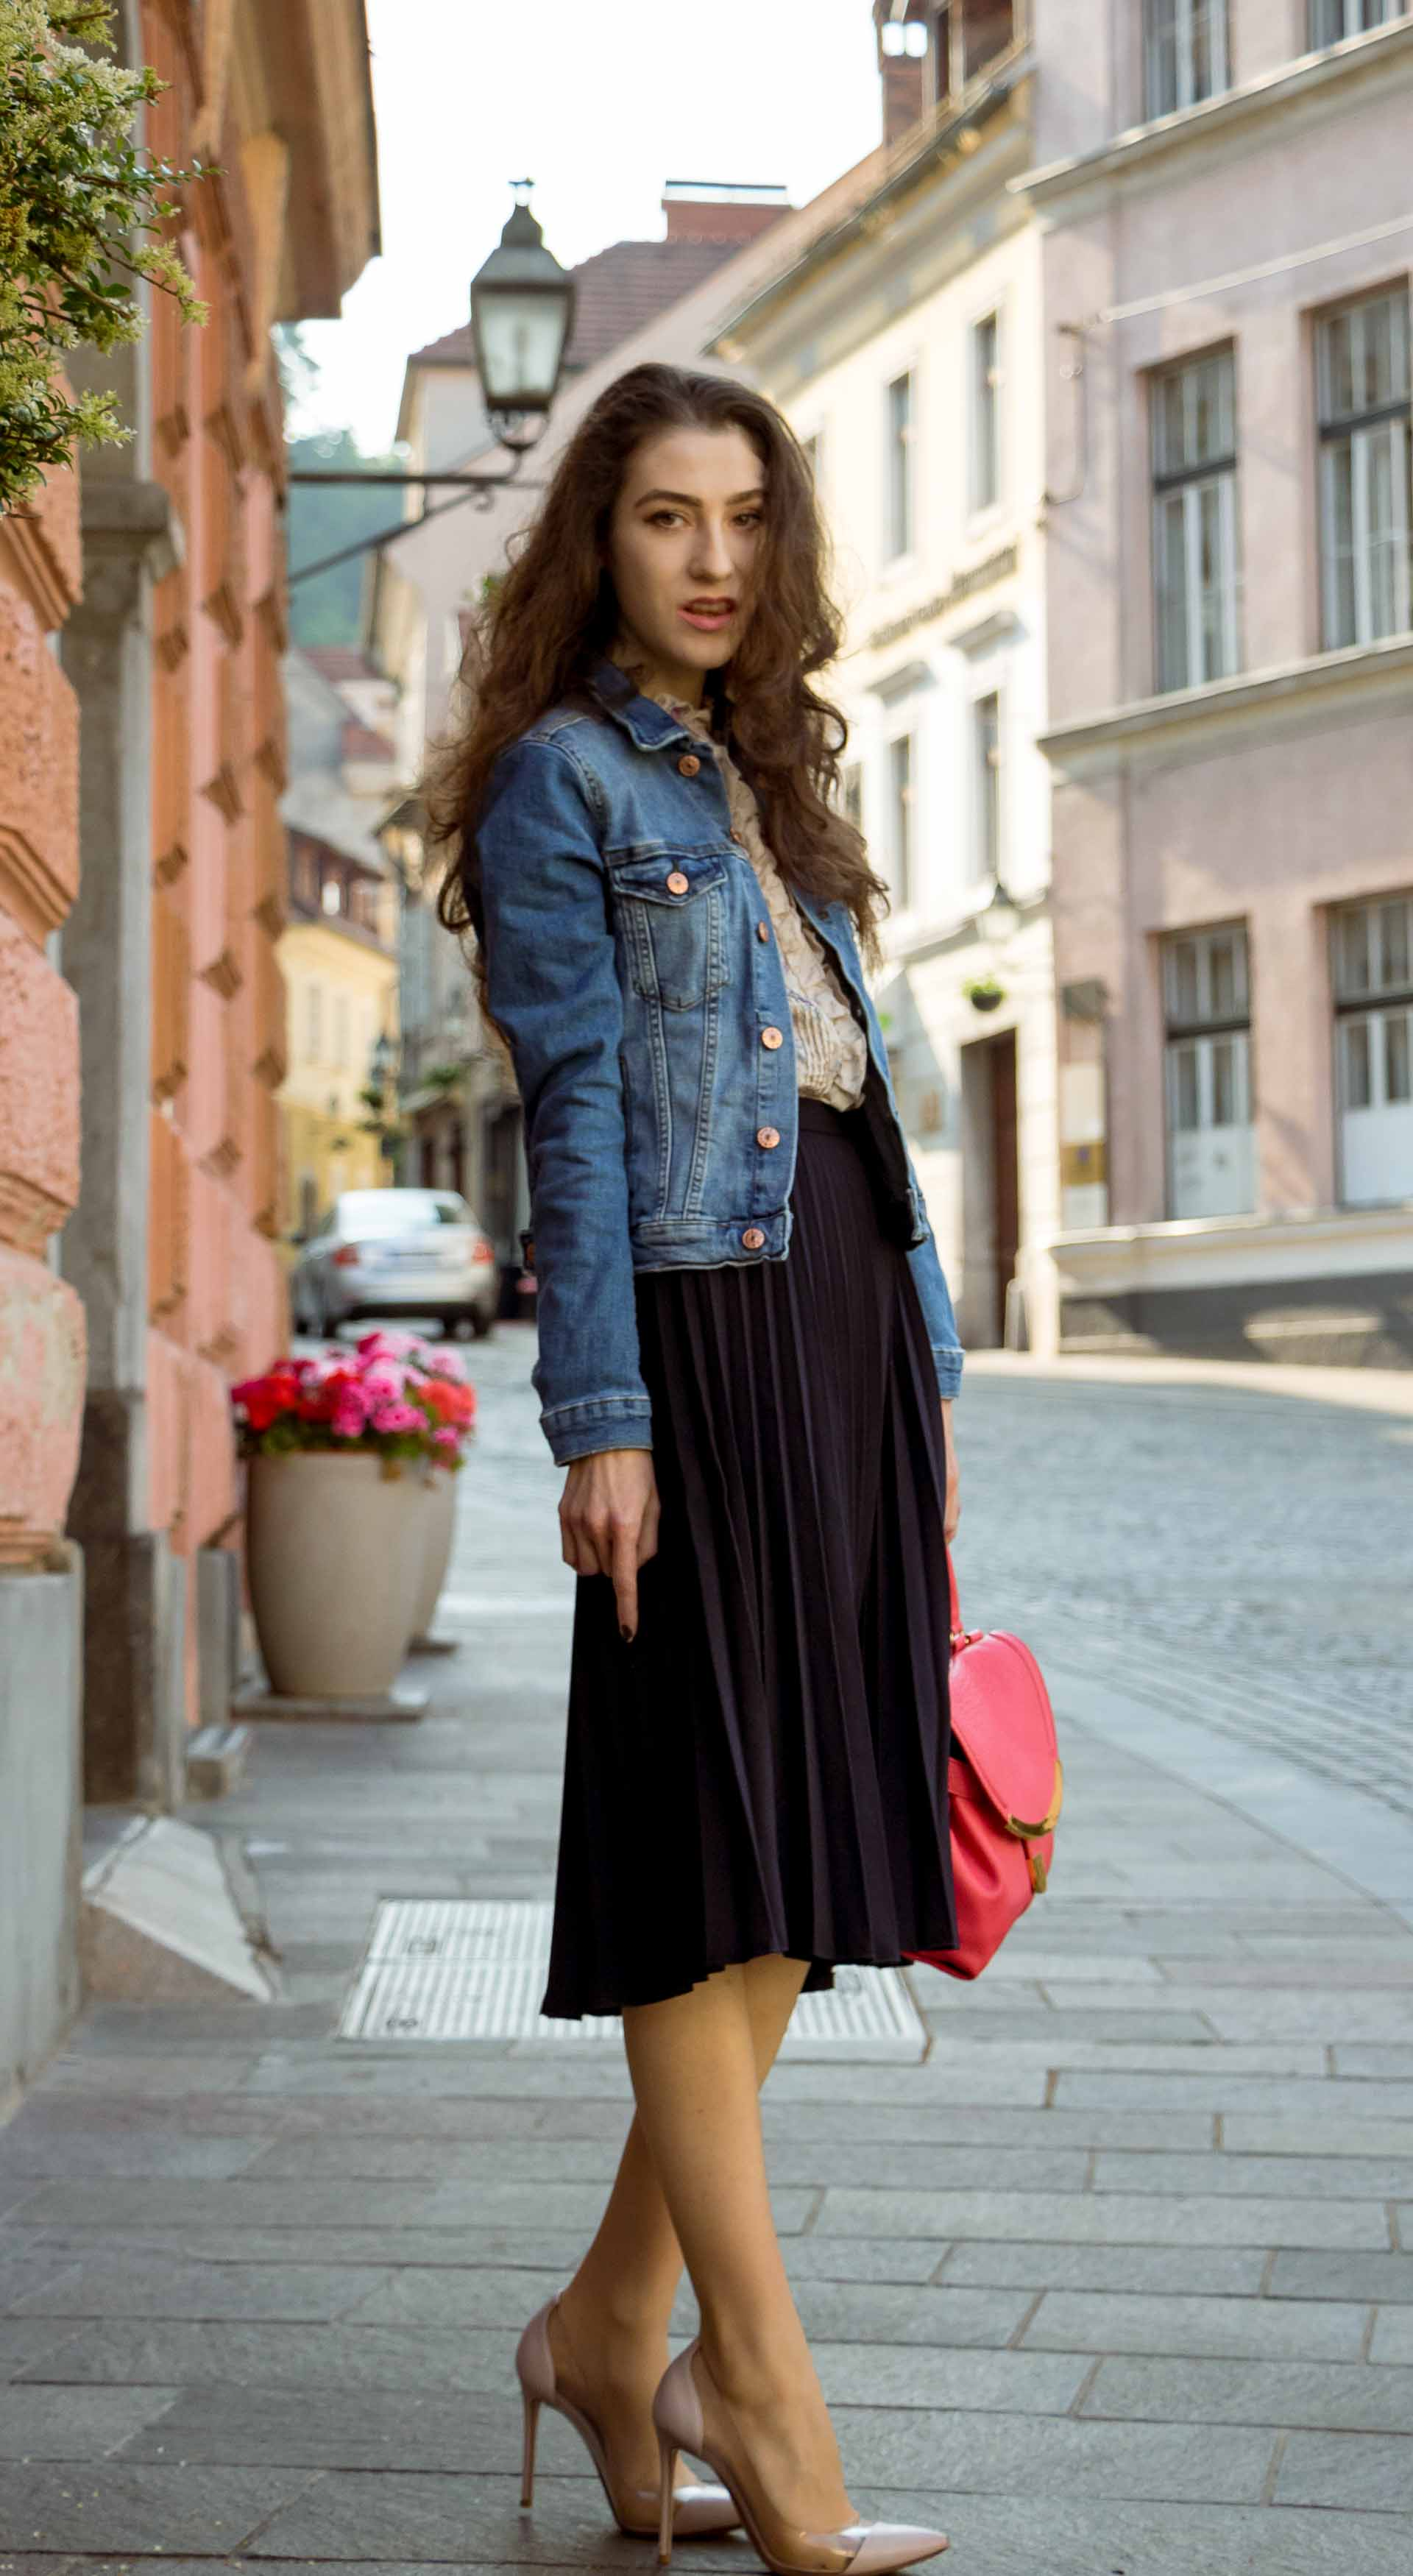 Veronika Lipar Fashion Blogger of Brunette from Wall Street dressed in H&M denim jacket, floral blouse, midi pleated skirt, Gianvito Rossi plexi pumps, pink top handle bag for brunch